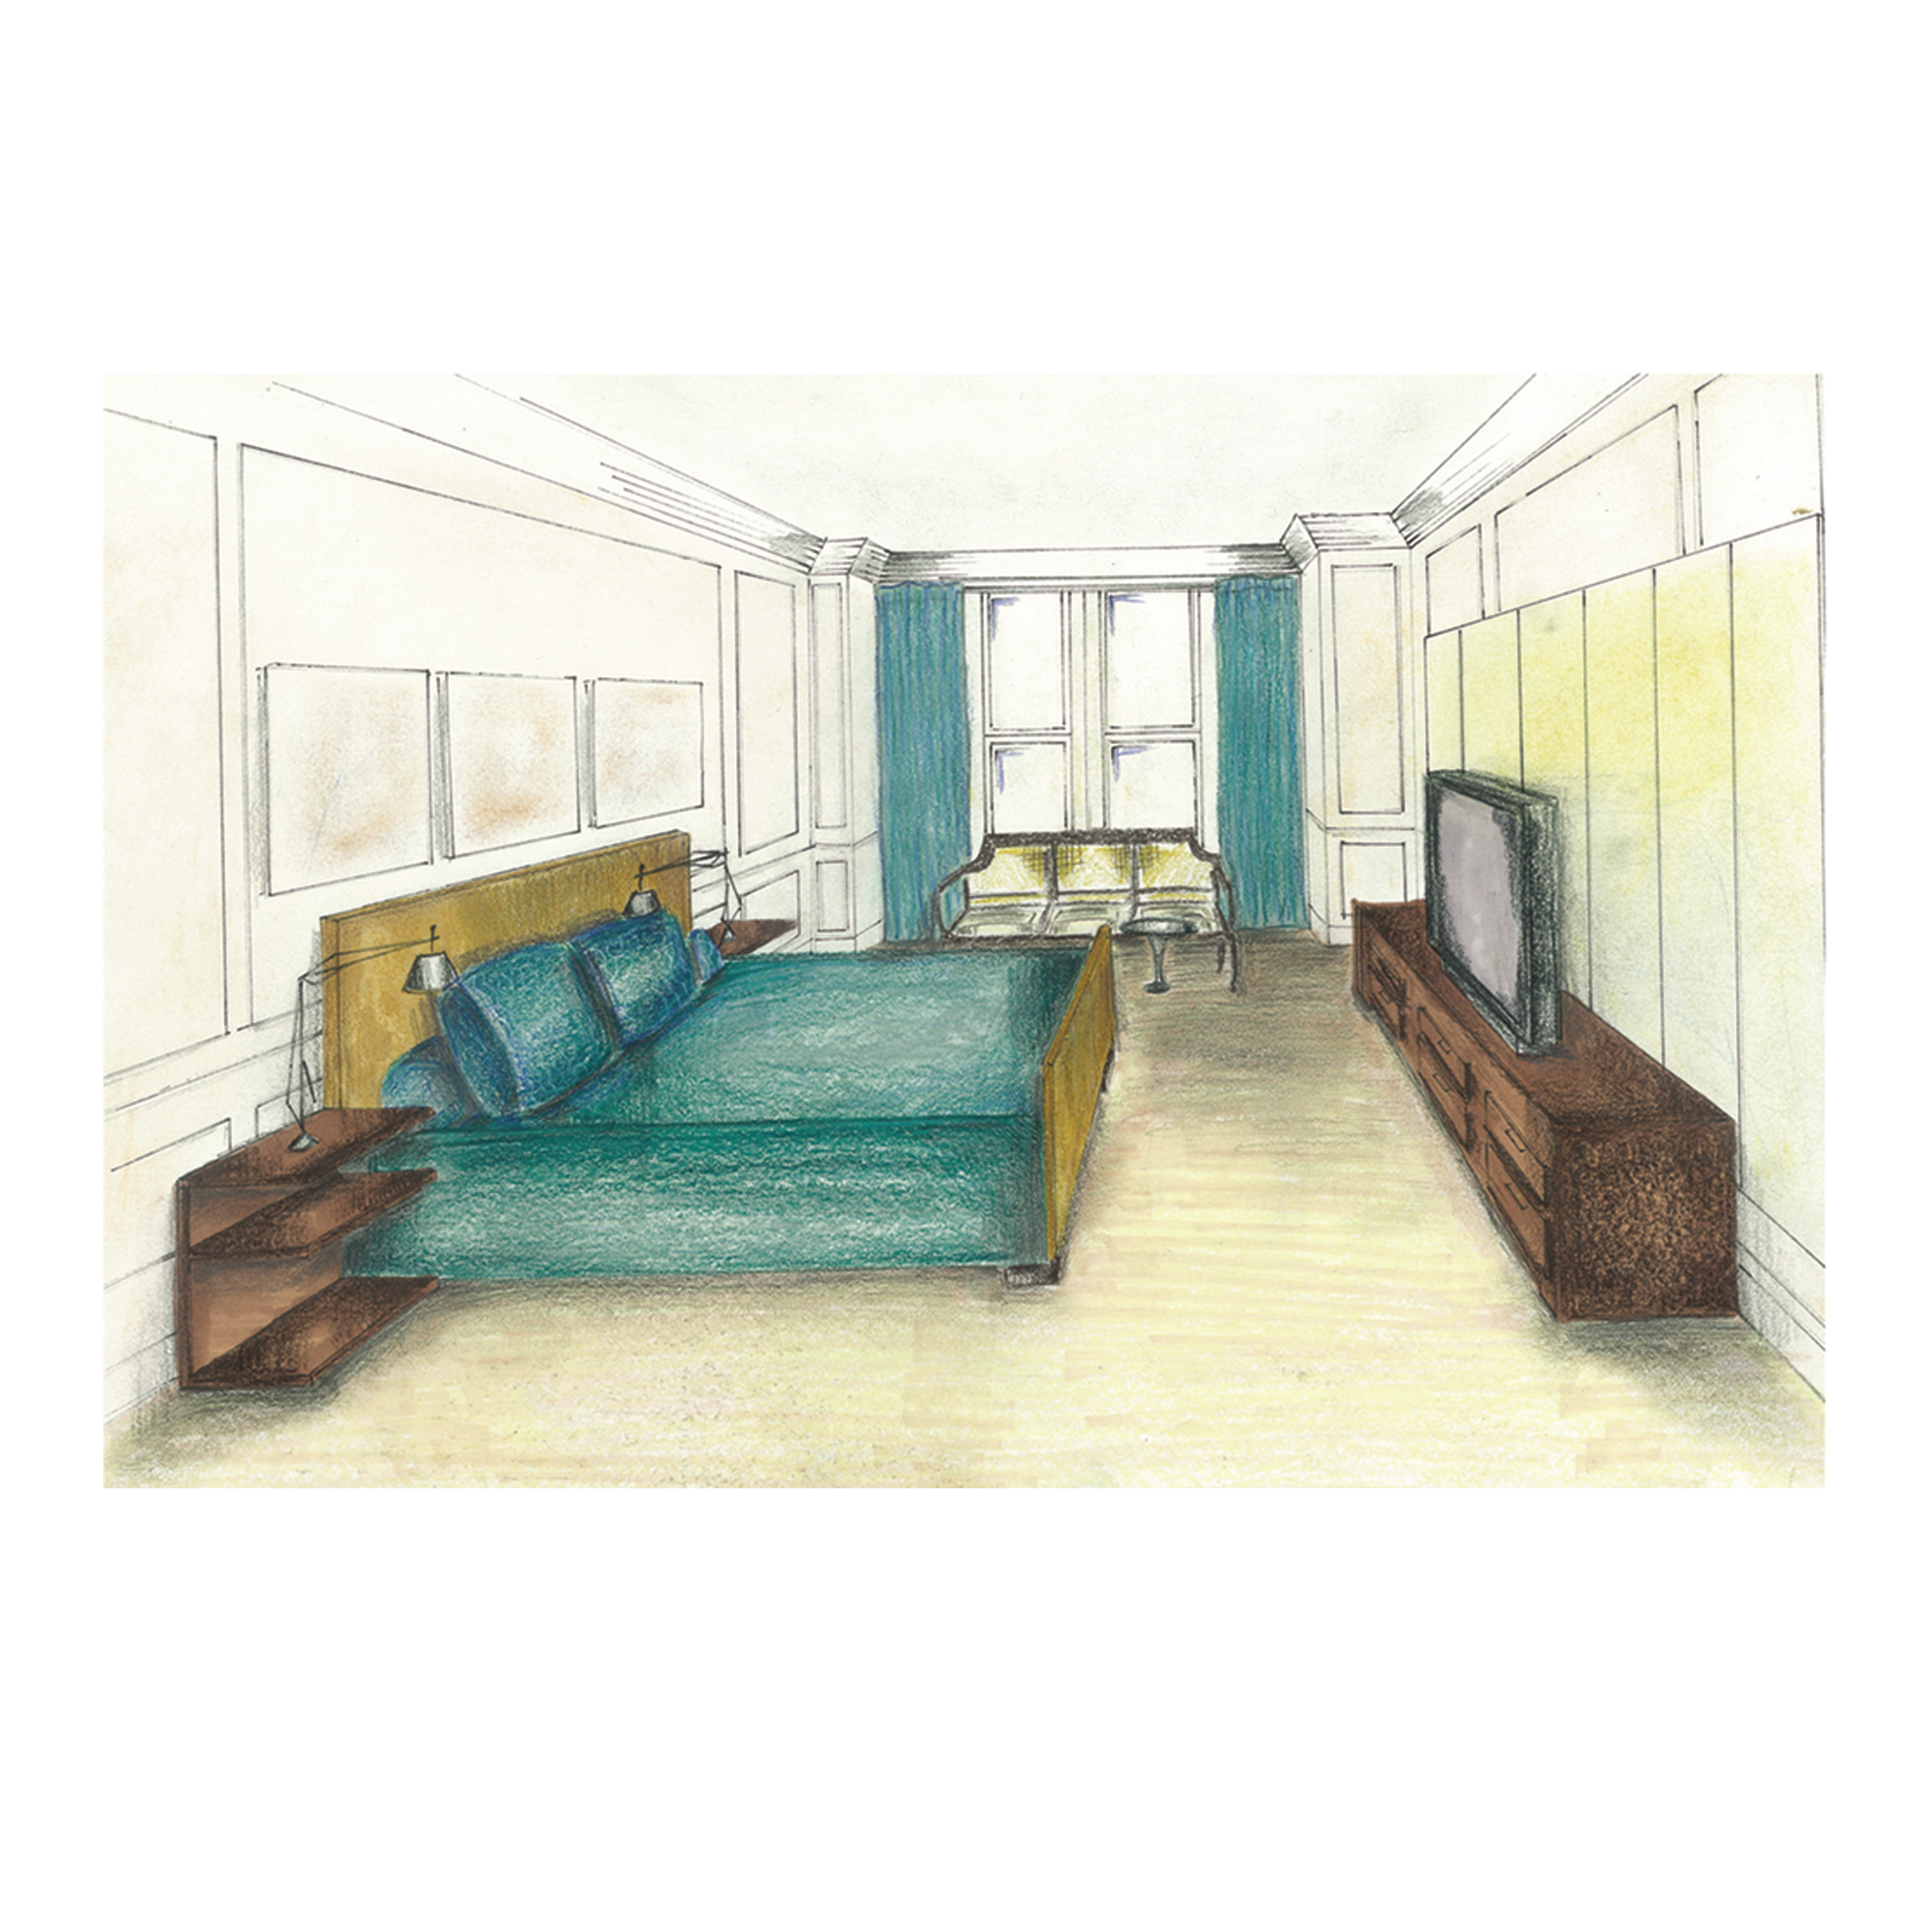 Bedroom drawing perspective - Residential Studio Bedroom Perspective Hand Drawn Hand Rendered